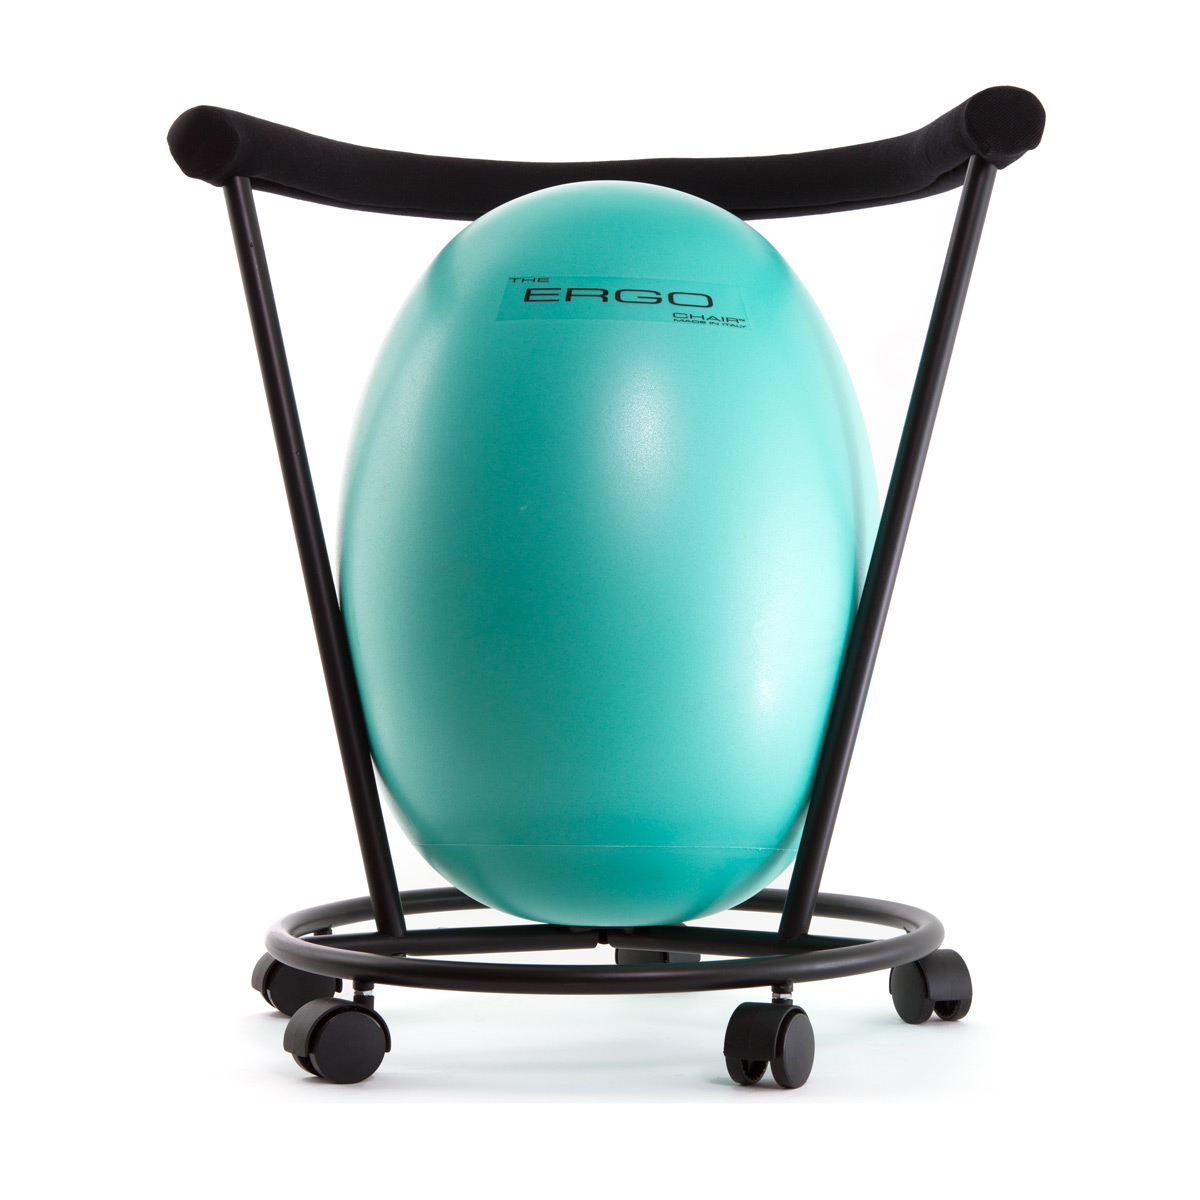 exercise ball chair secrets - the ergo chair